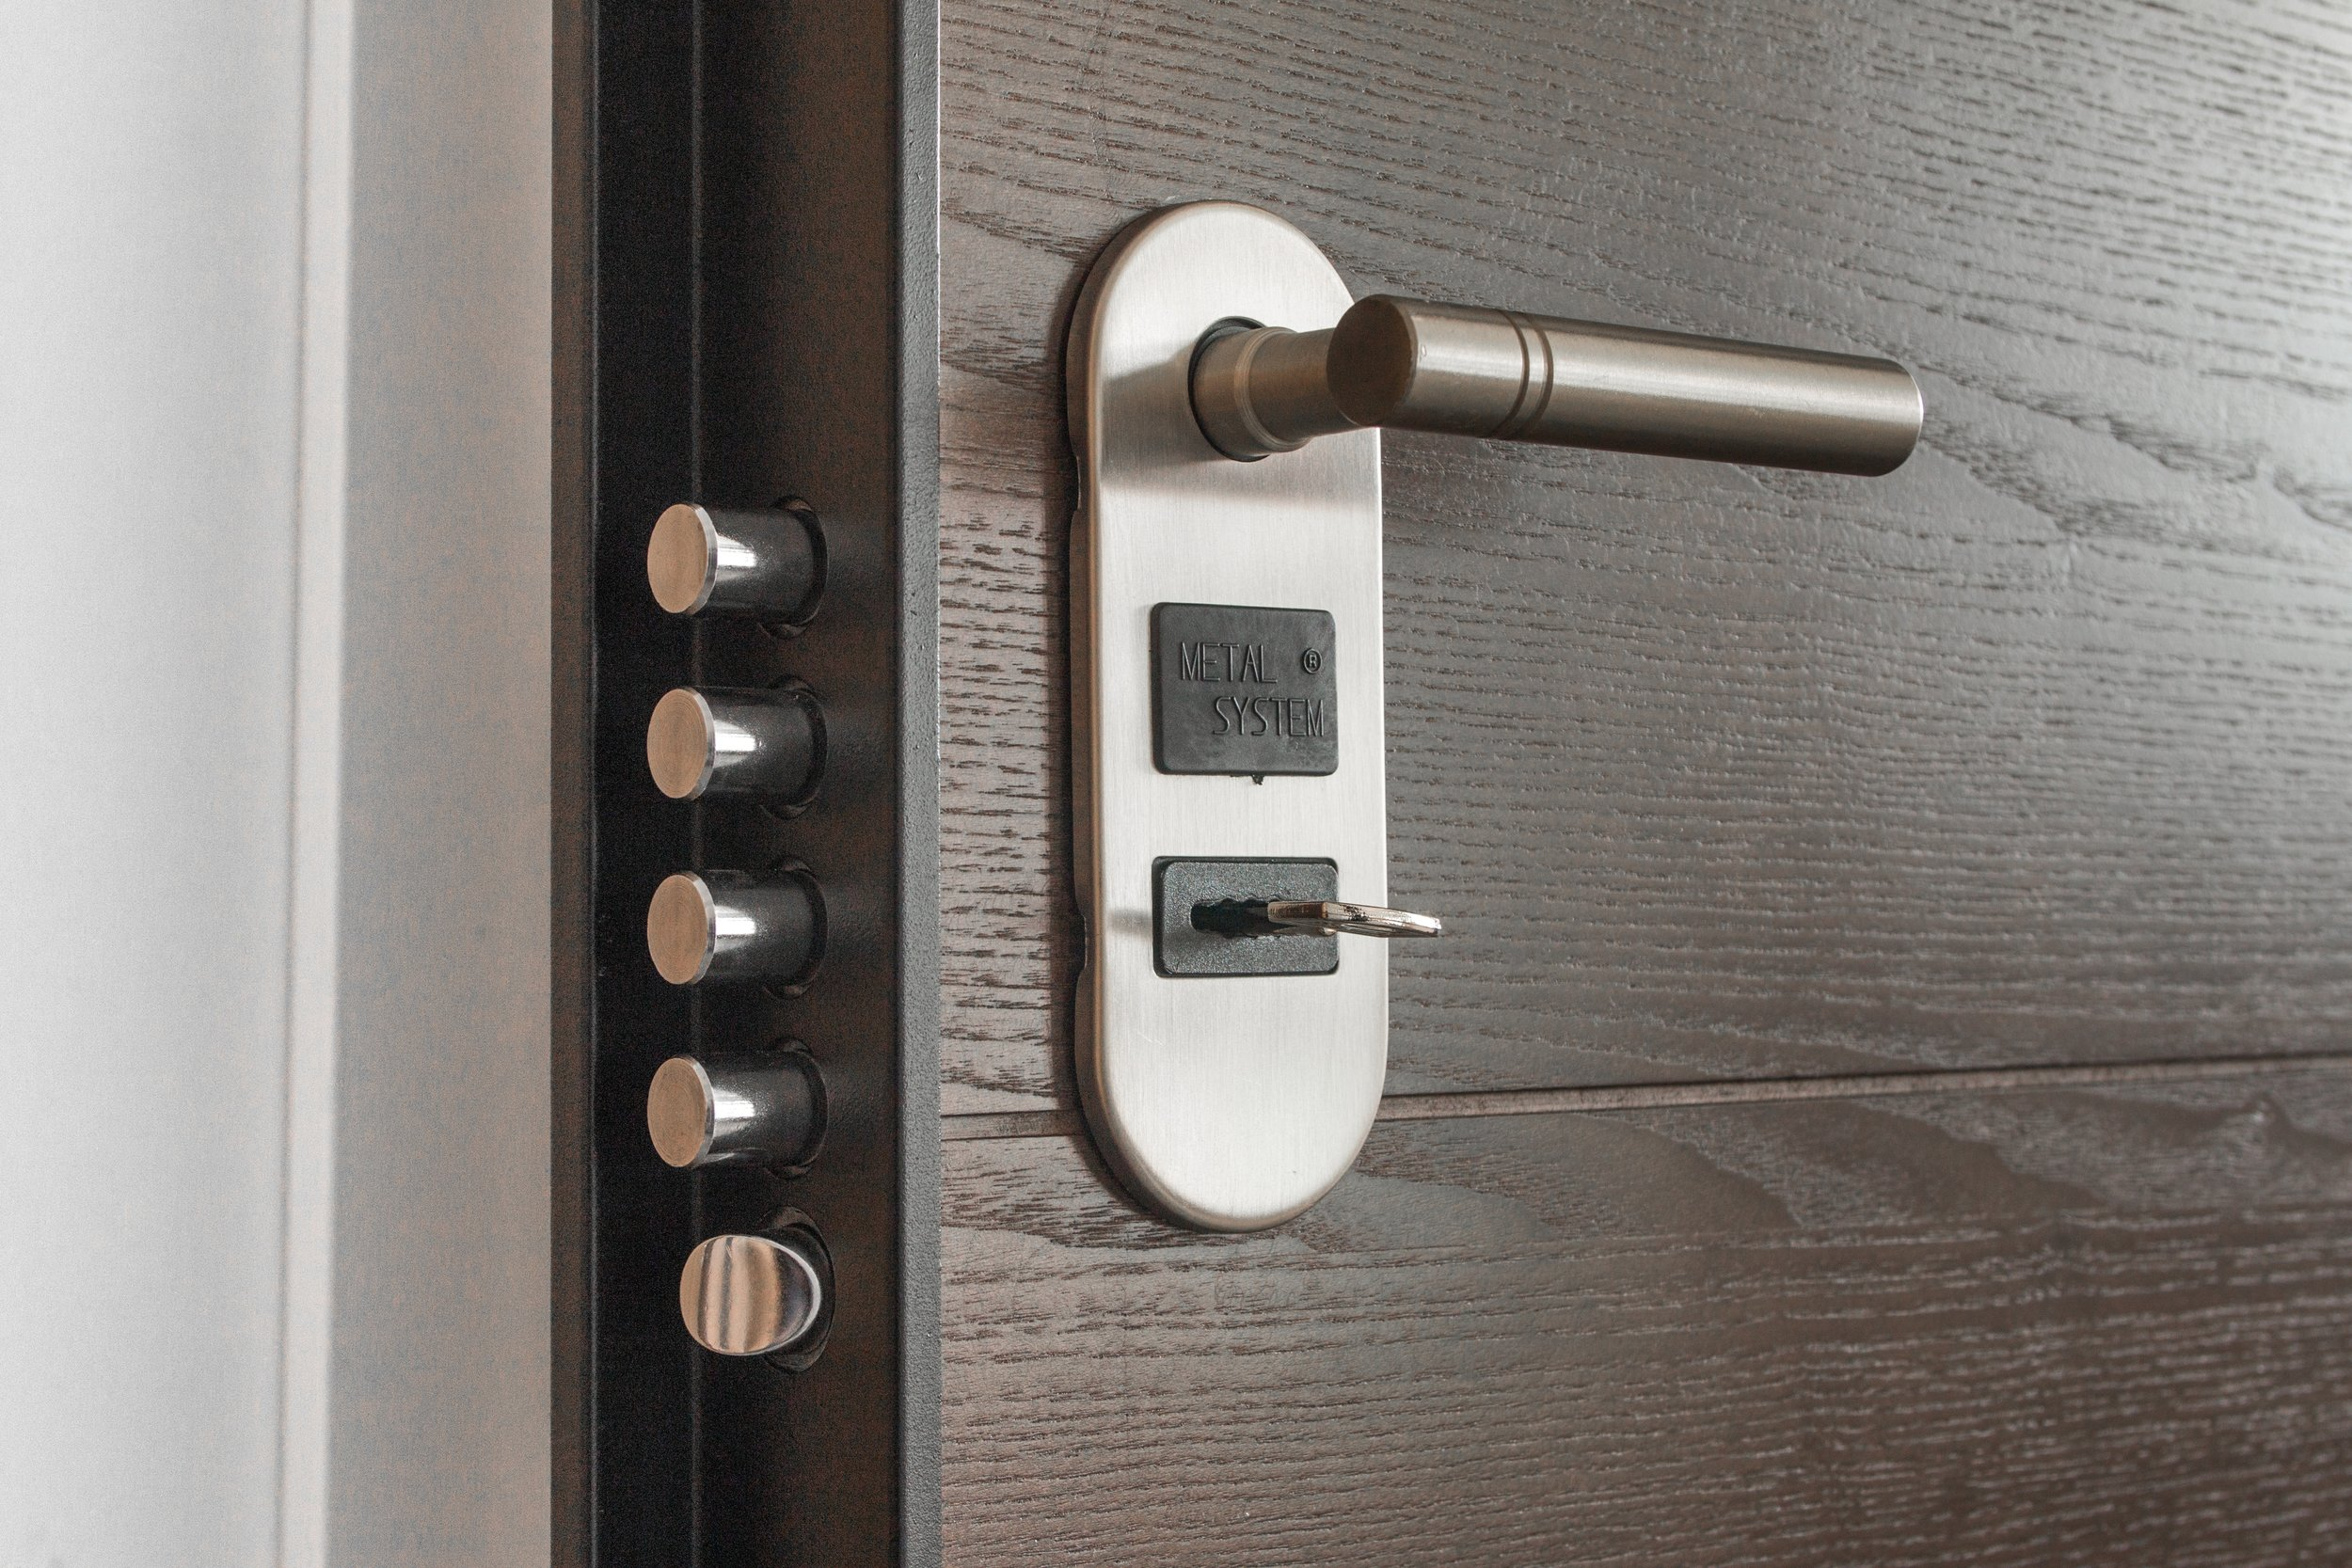 door-handle-key-279810.jpg